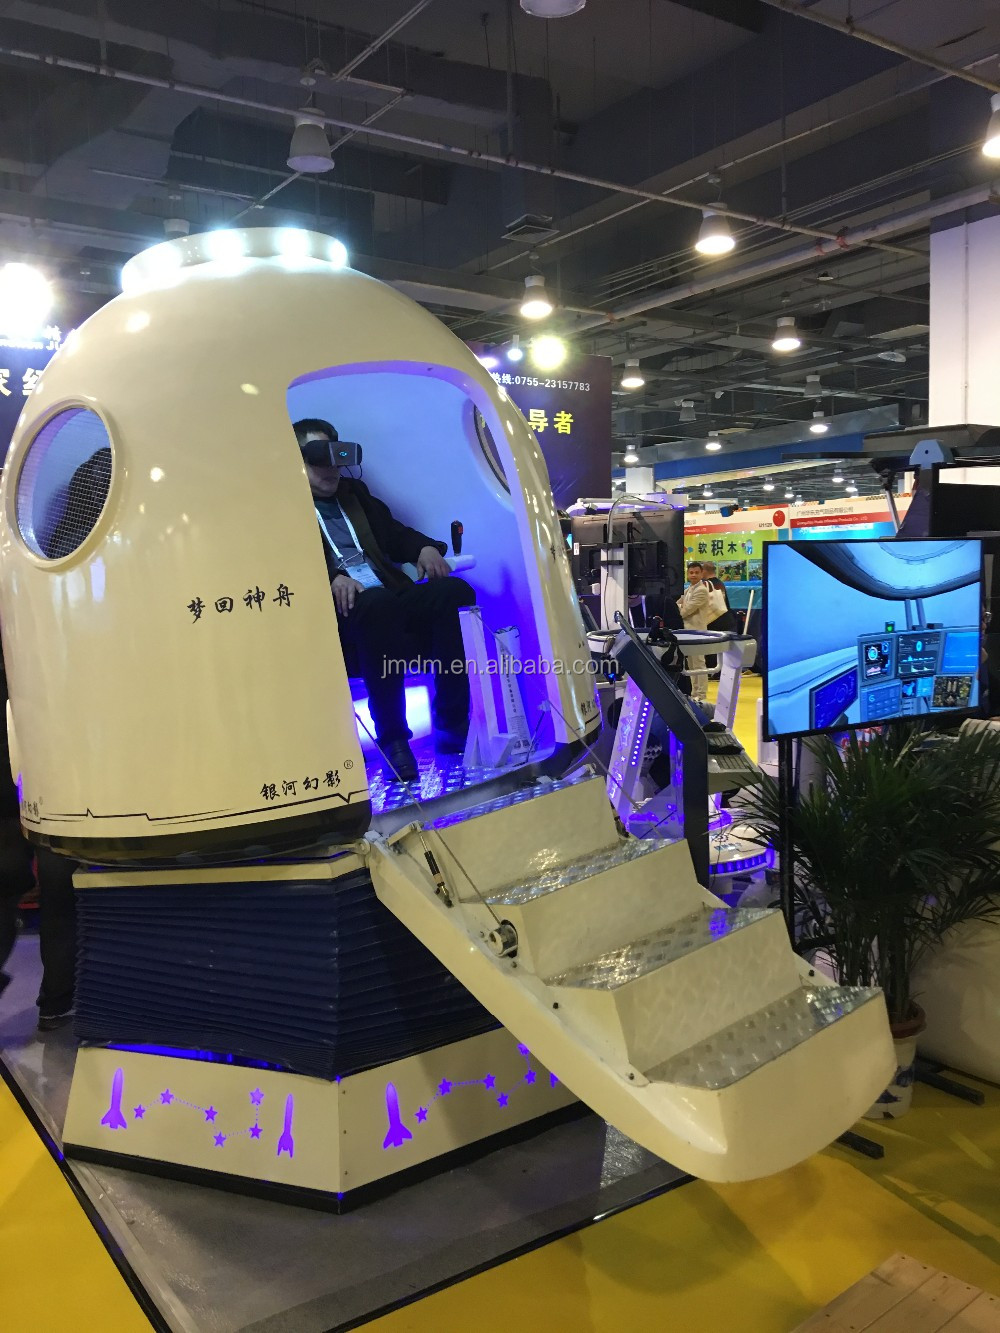 9D virtual reality aeospaceship simulator 9d vr VR spaceship capsule 360 vr cinema